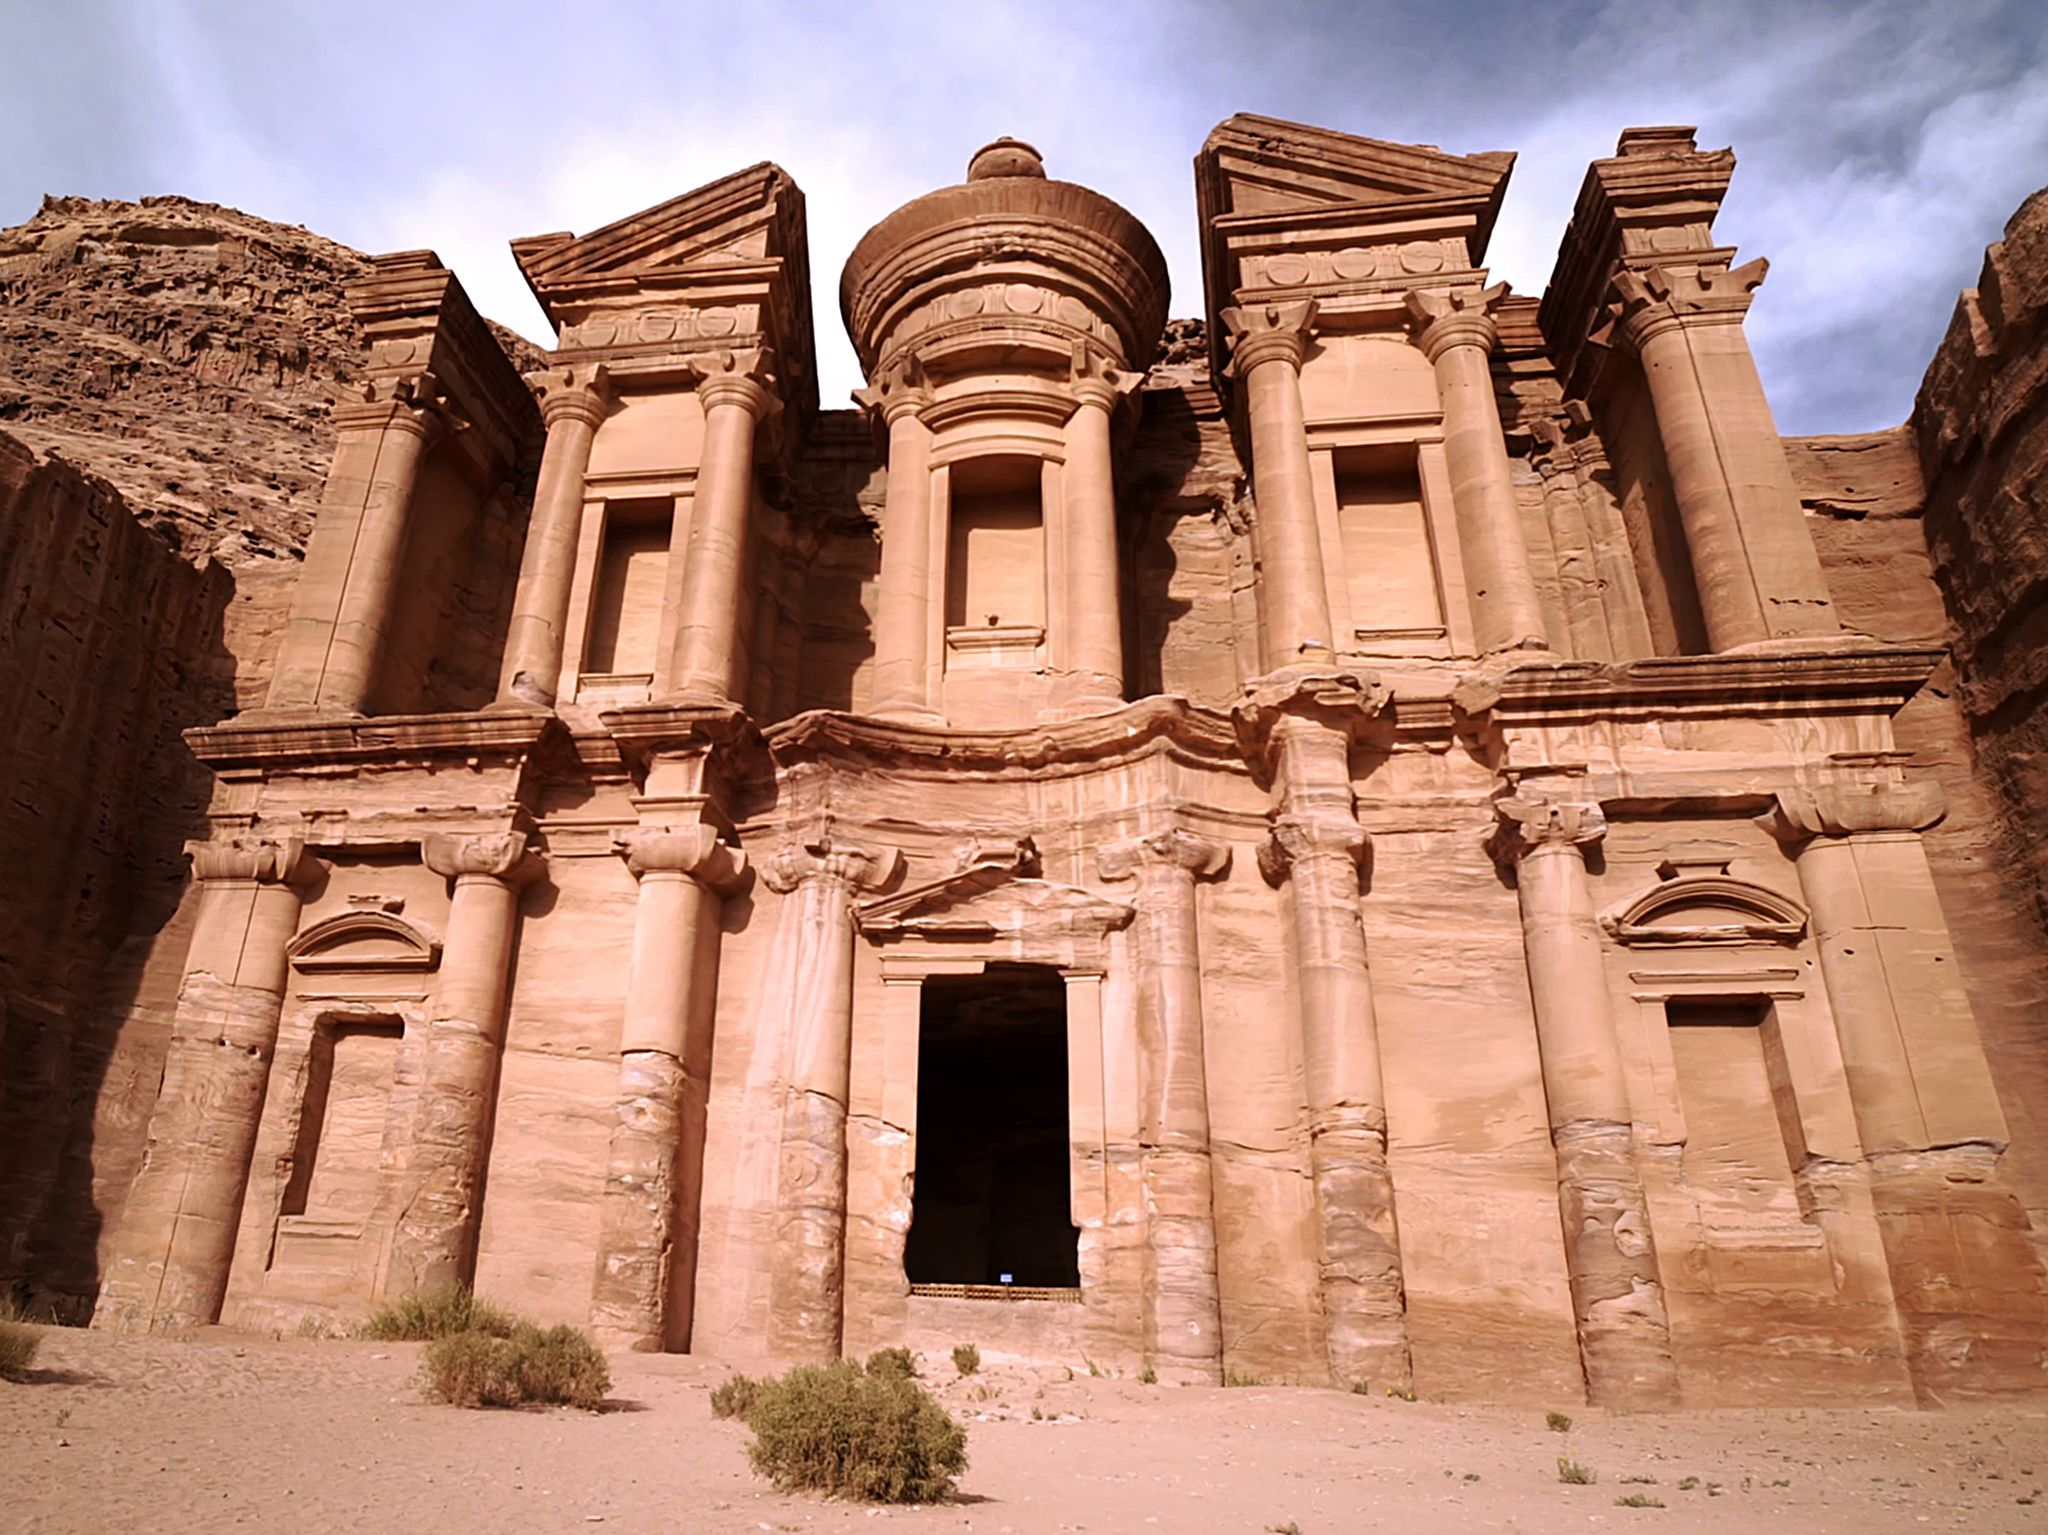 The facade of Ad-Dier, or the Monastery, in the ancient city of Petra. This image is from Petra:... [Photo of the day - سپتامبر 2019]